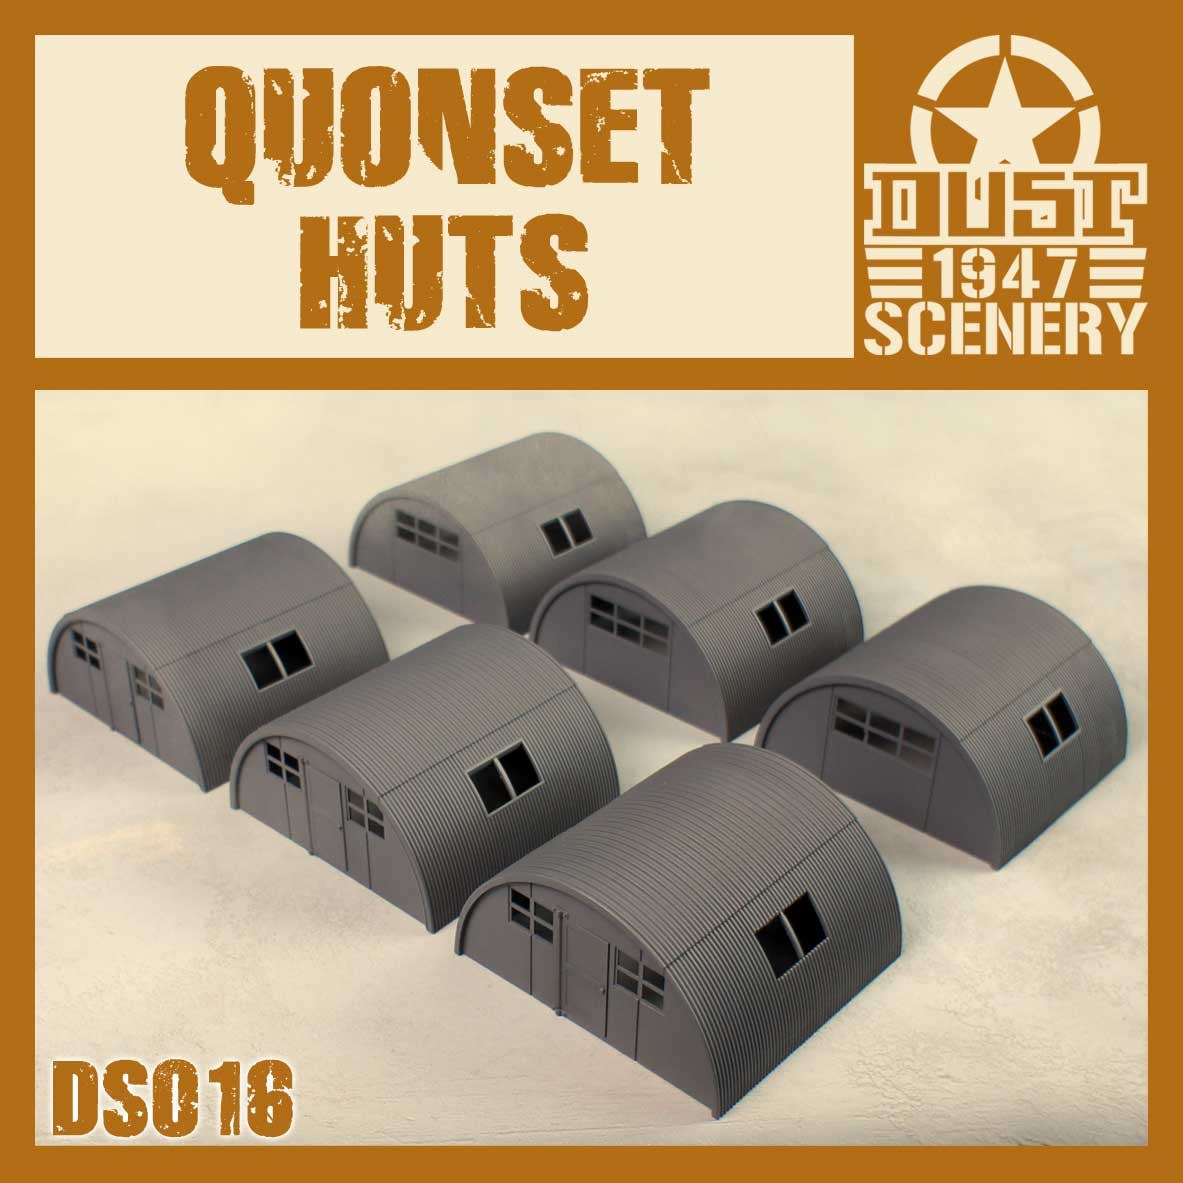 DUST USA DUST DROP-SHIP: Quonset Huts